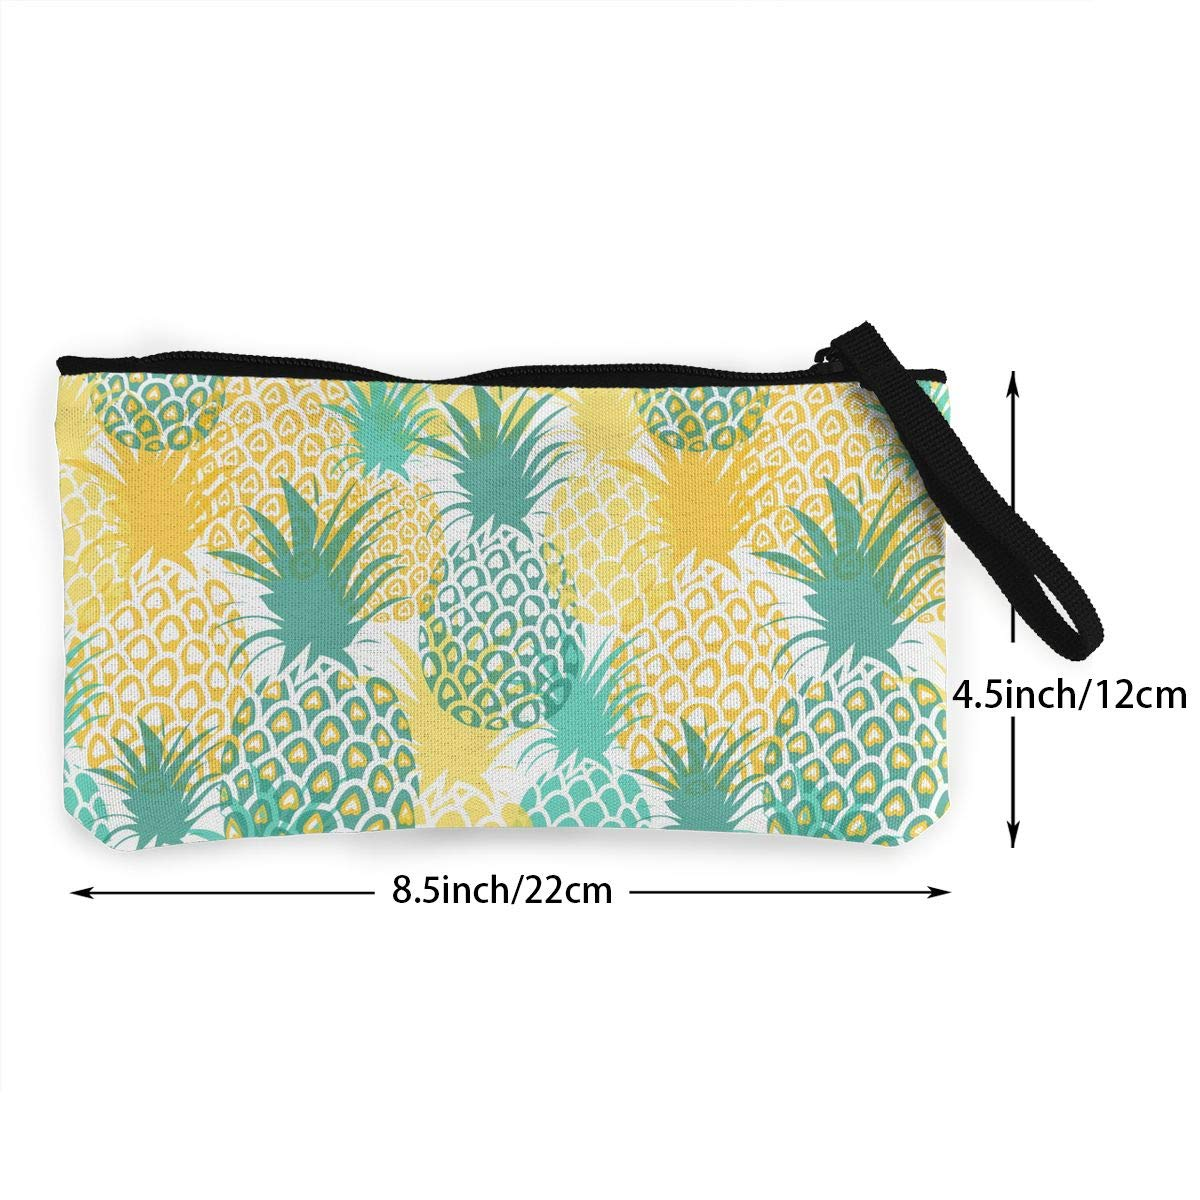 Bk55Oi/&/& Womens Retro Coin Purse Pineapples Pattern Canvas Card Wallet with Zipper for Women